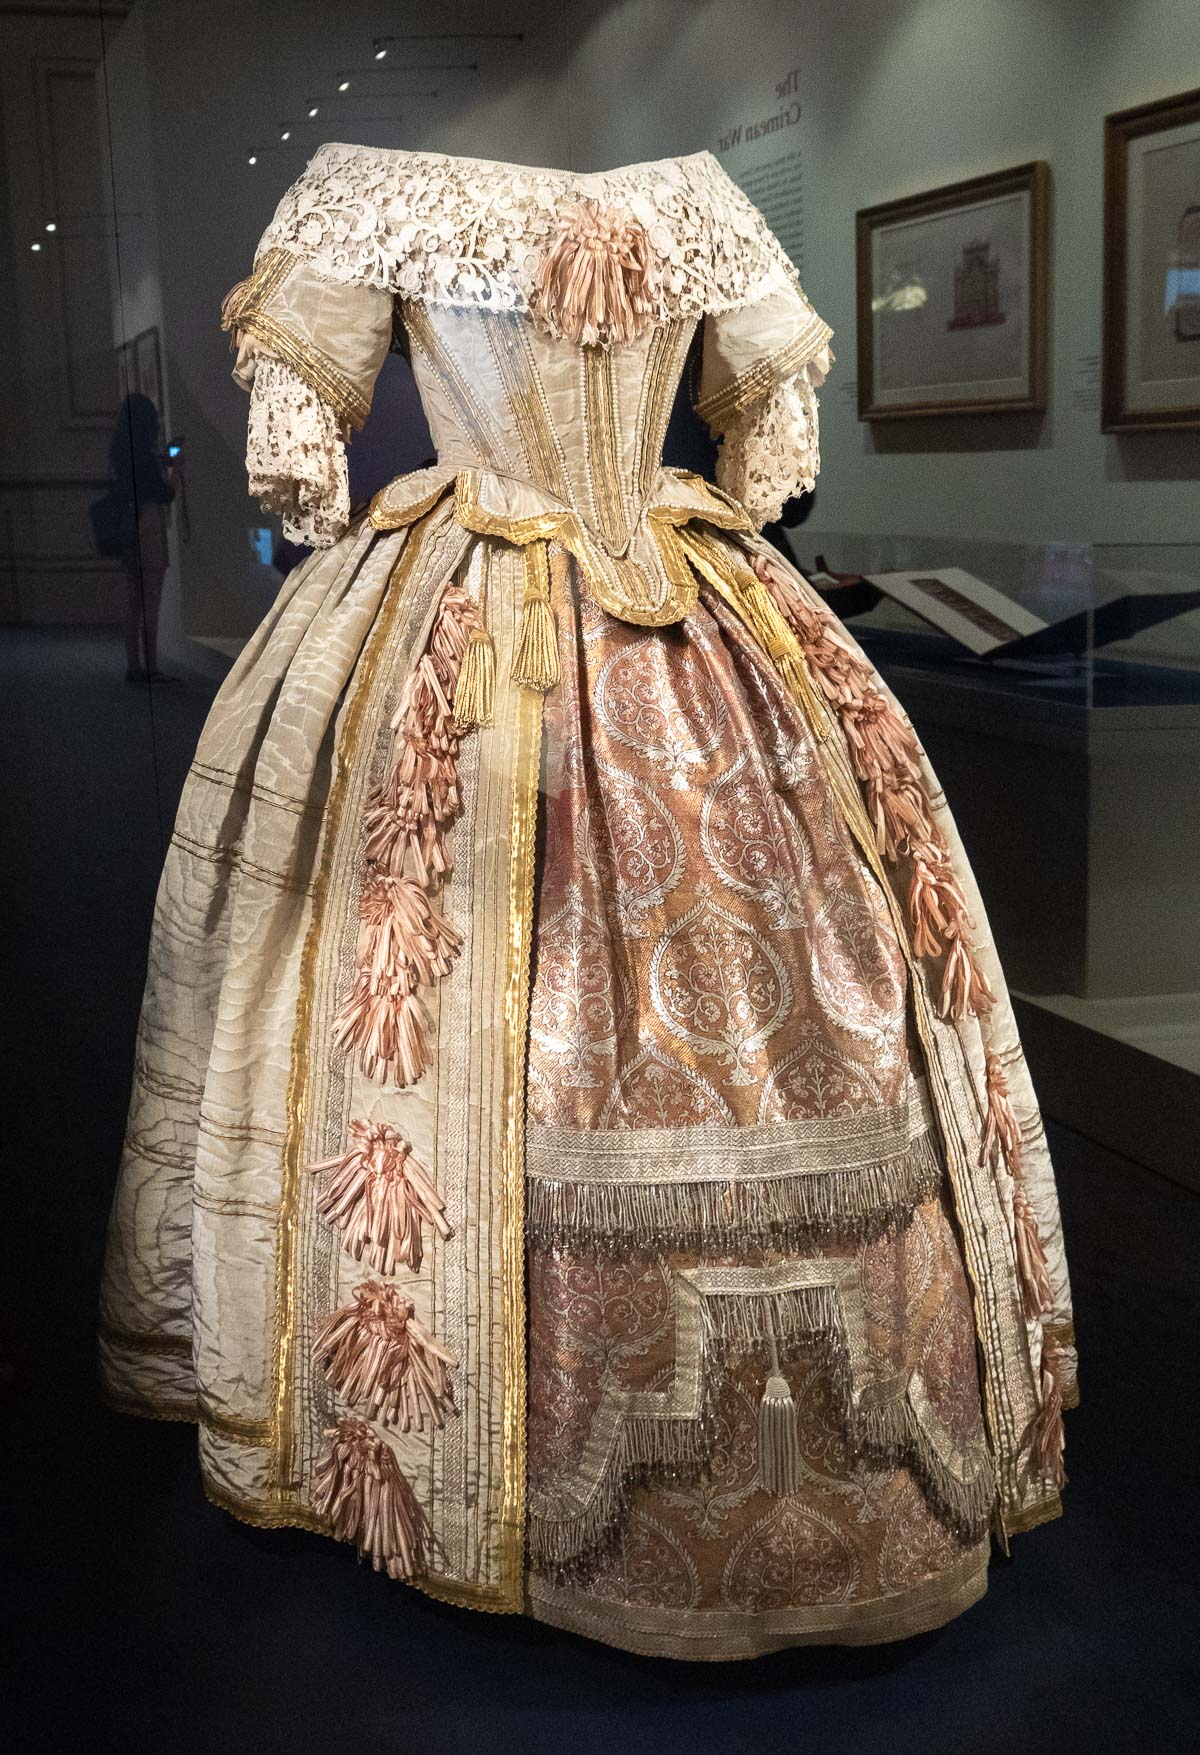 Queen Victoria, Royal Dress, Royal Gown